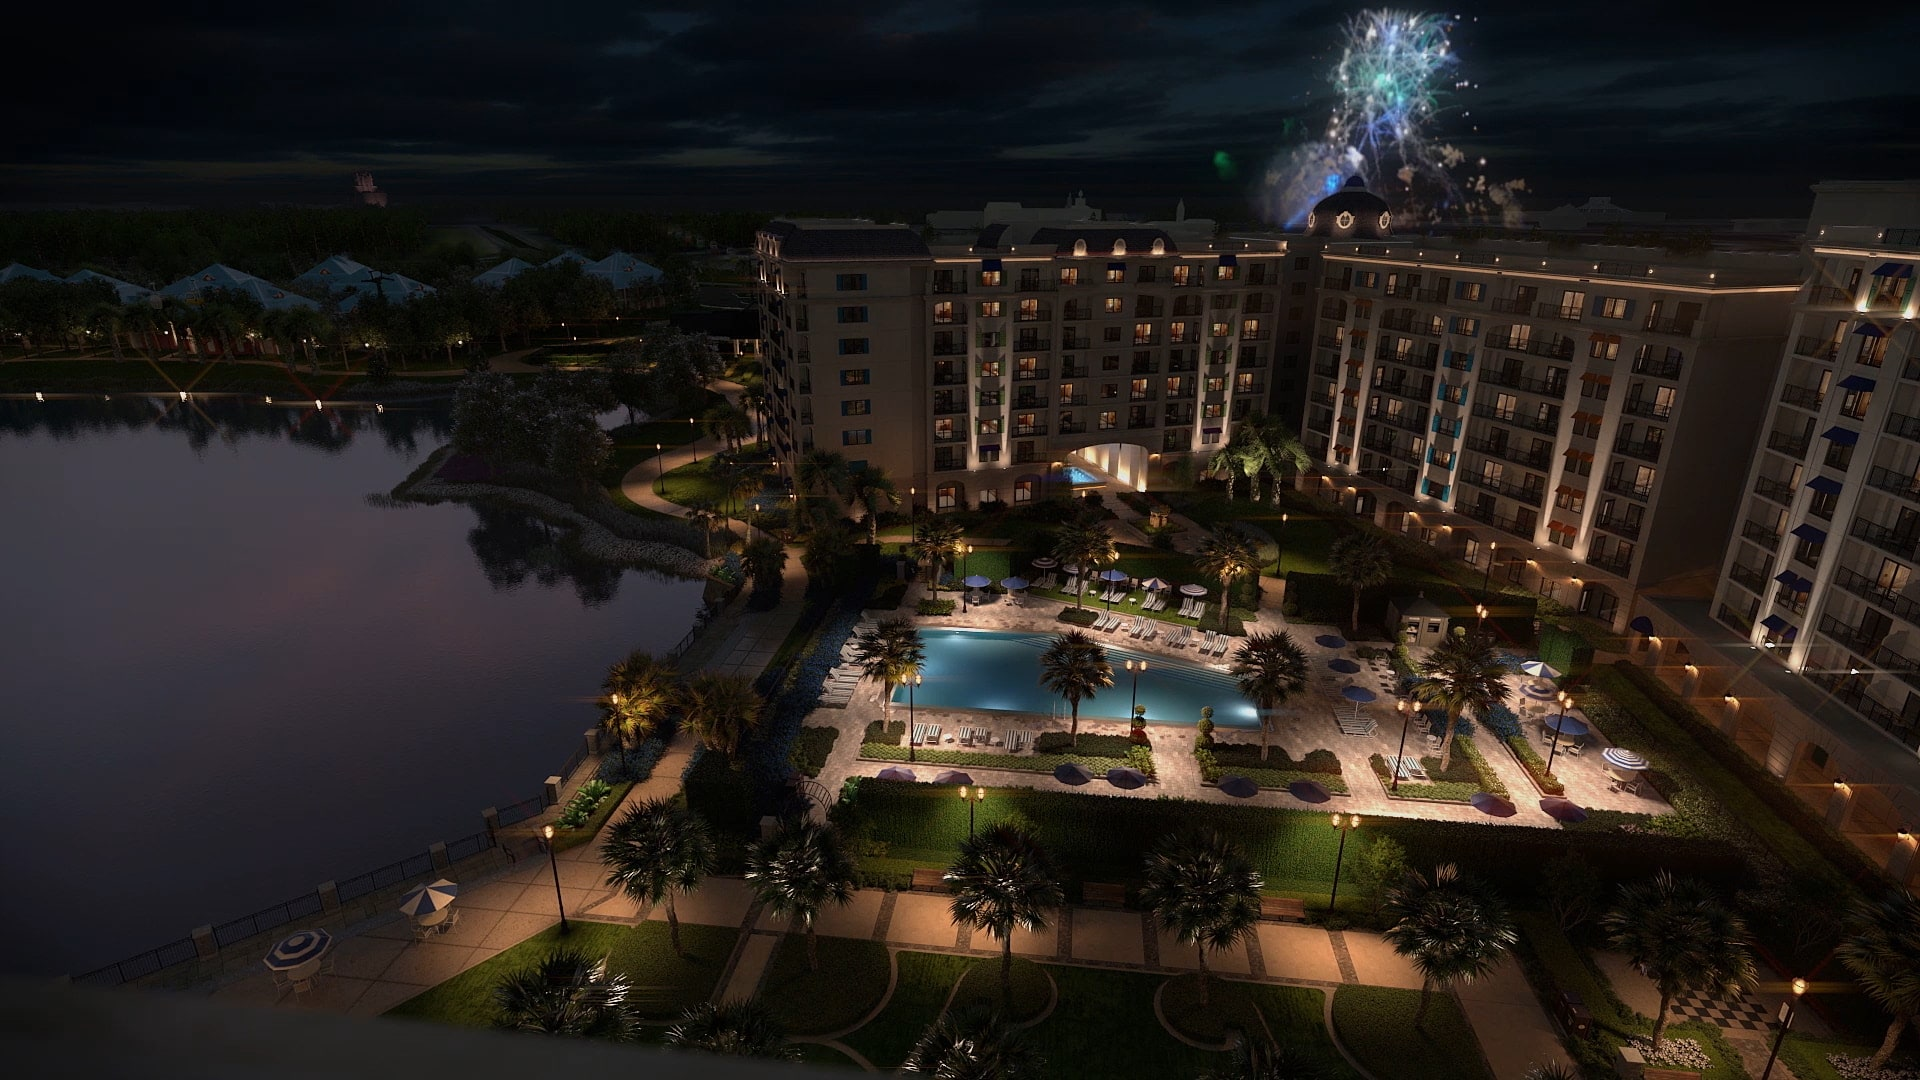 Fireworks bursting in the night sky above Disney's Riviera Resort